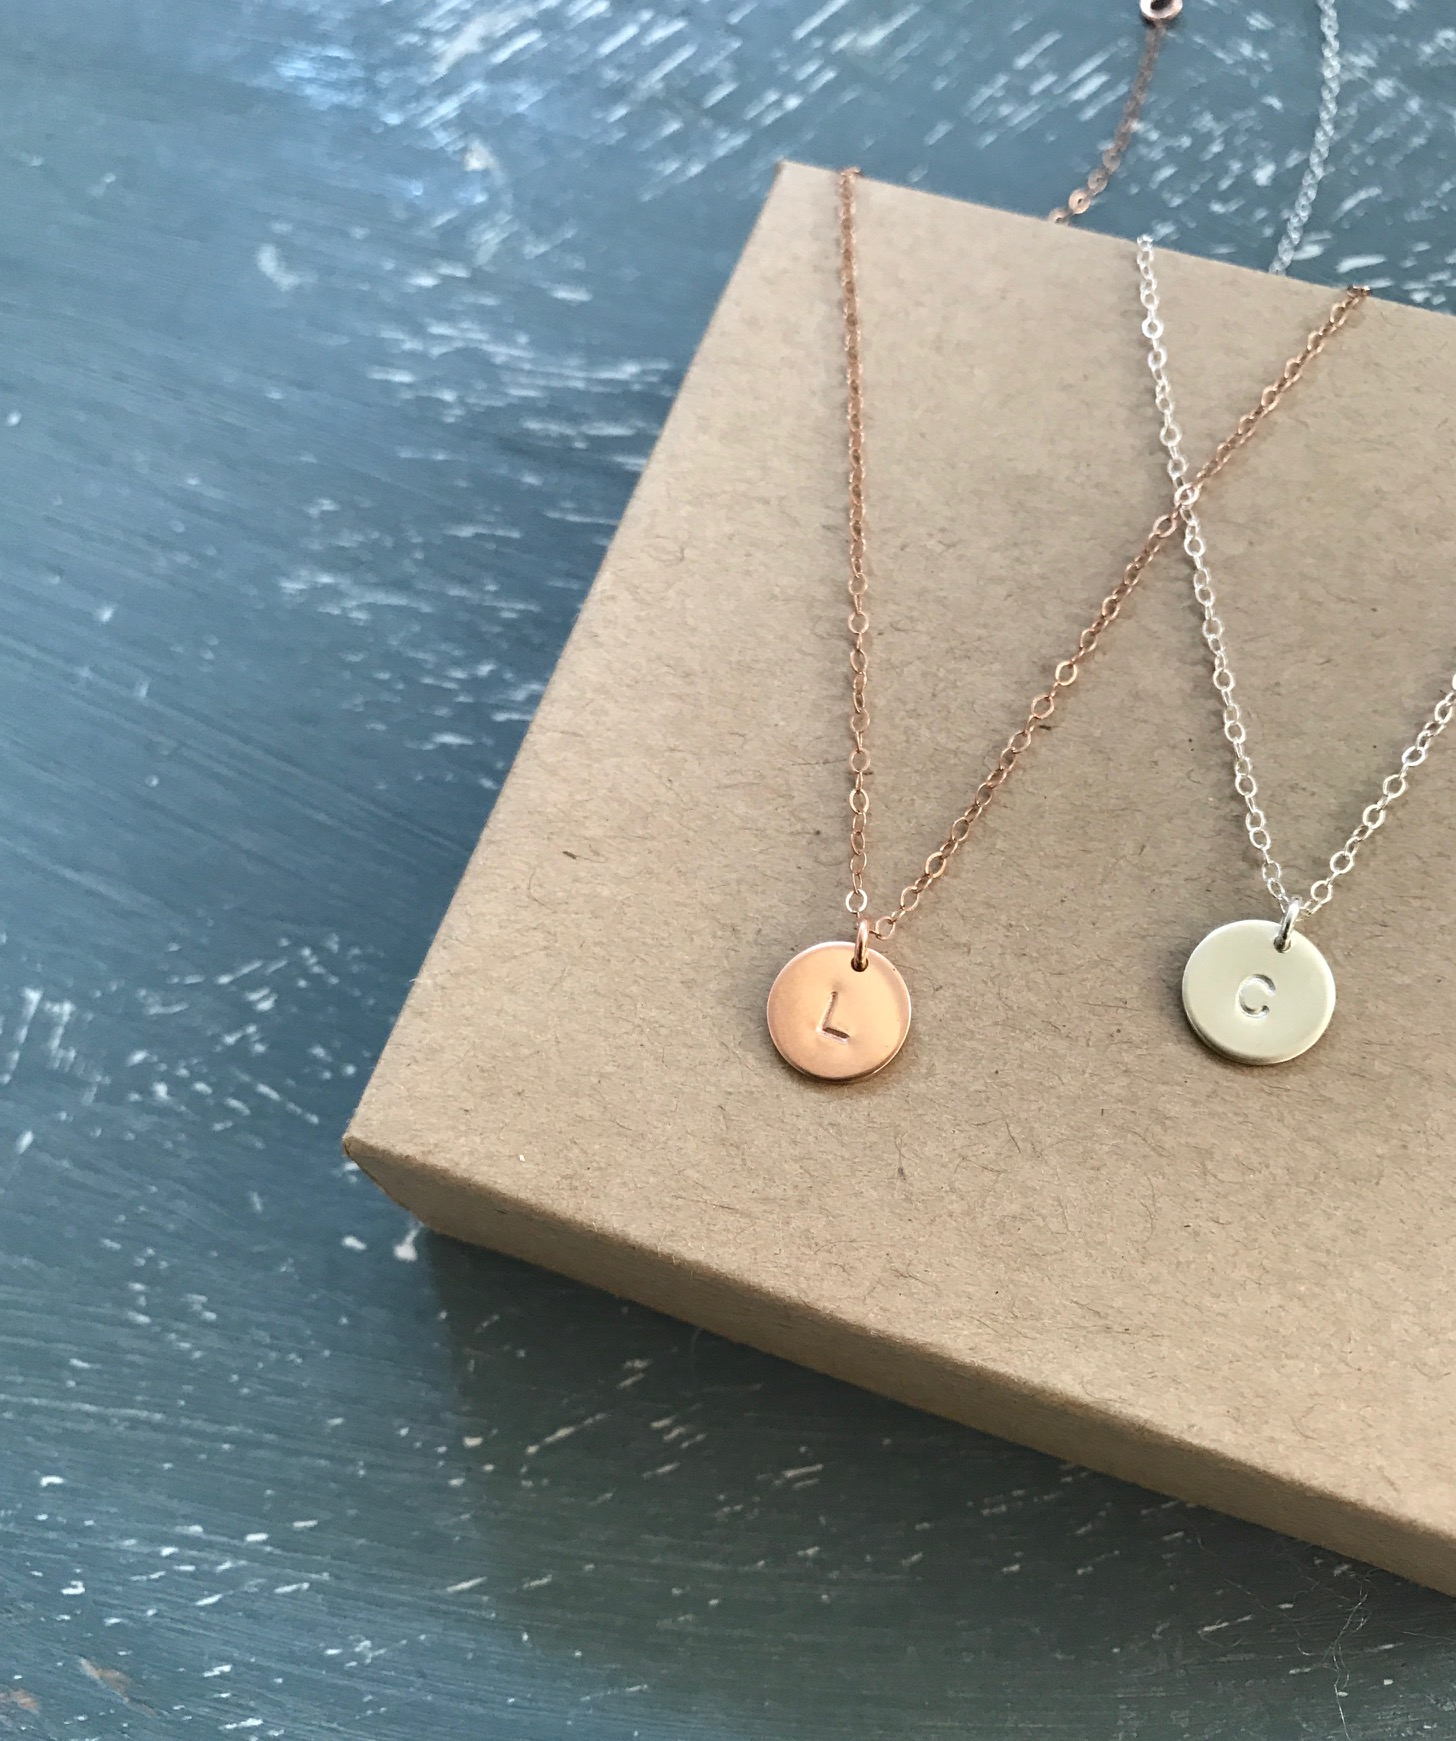 Personalized necklaces make the perfect gift, especially for new moms.